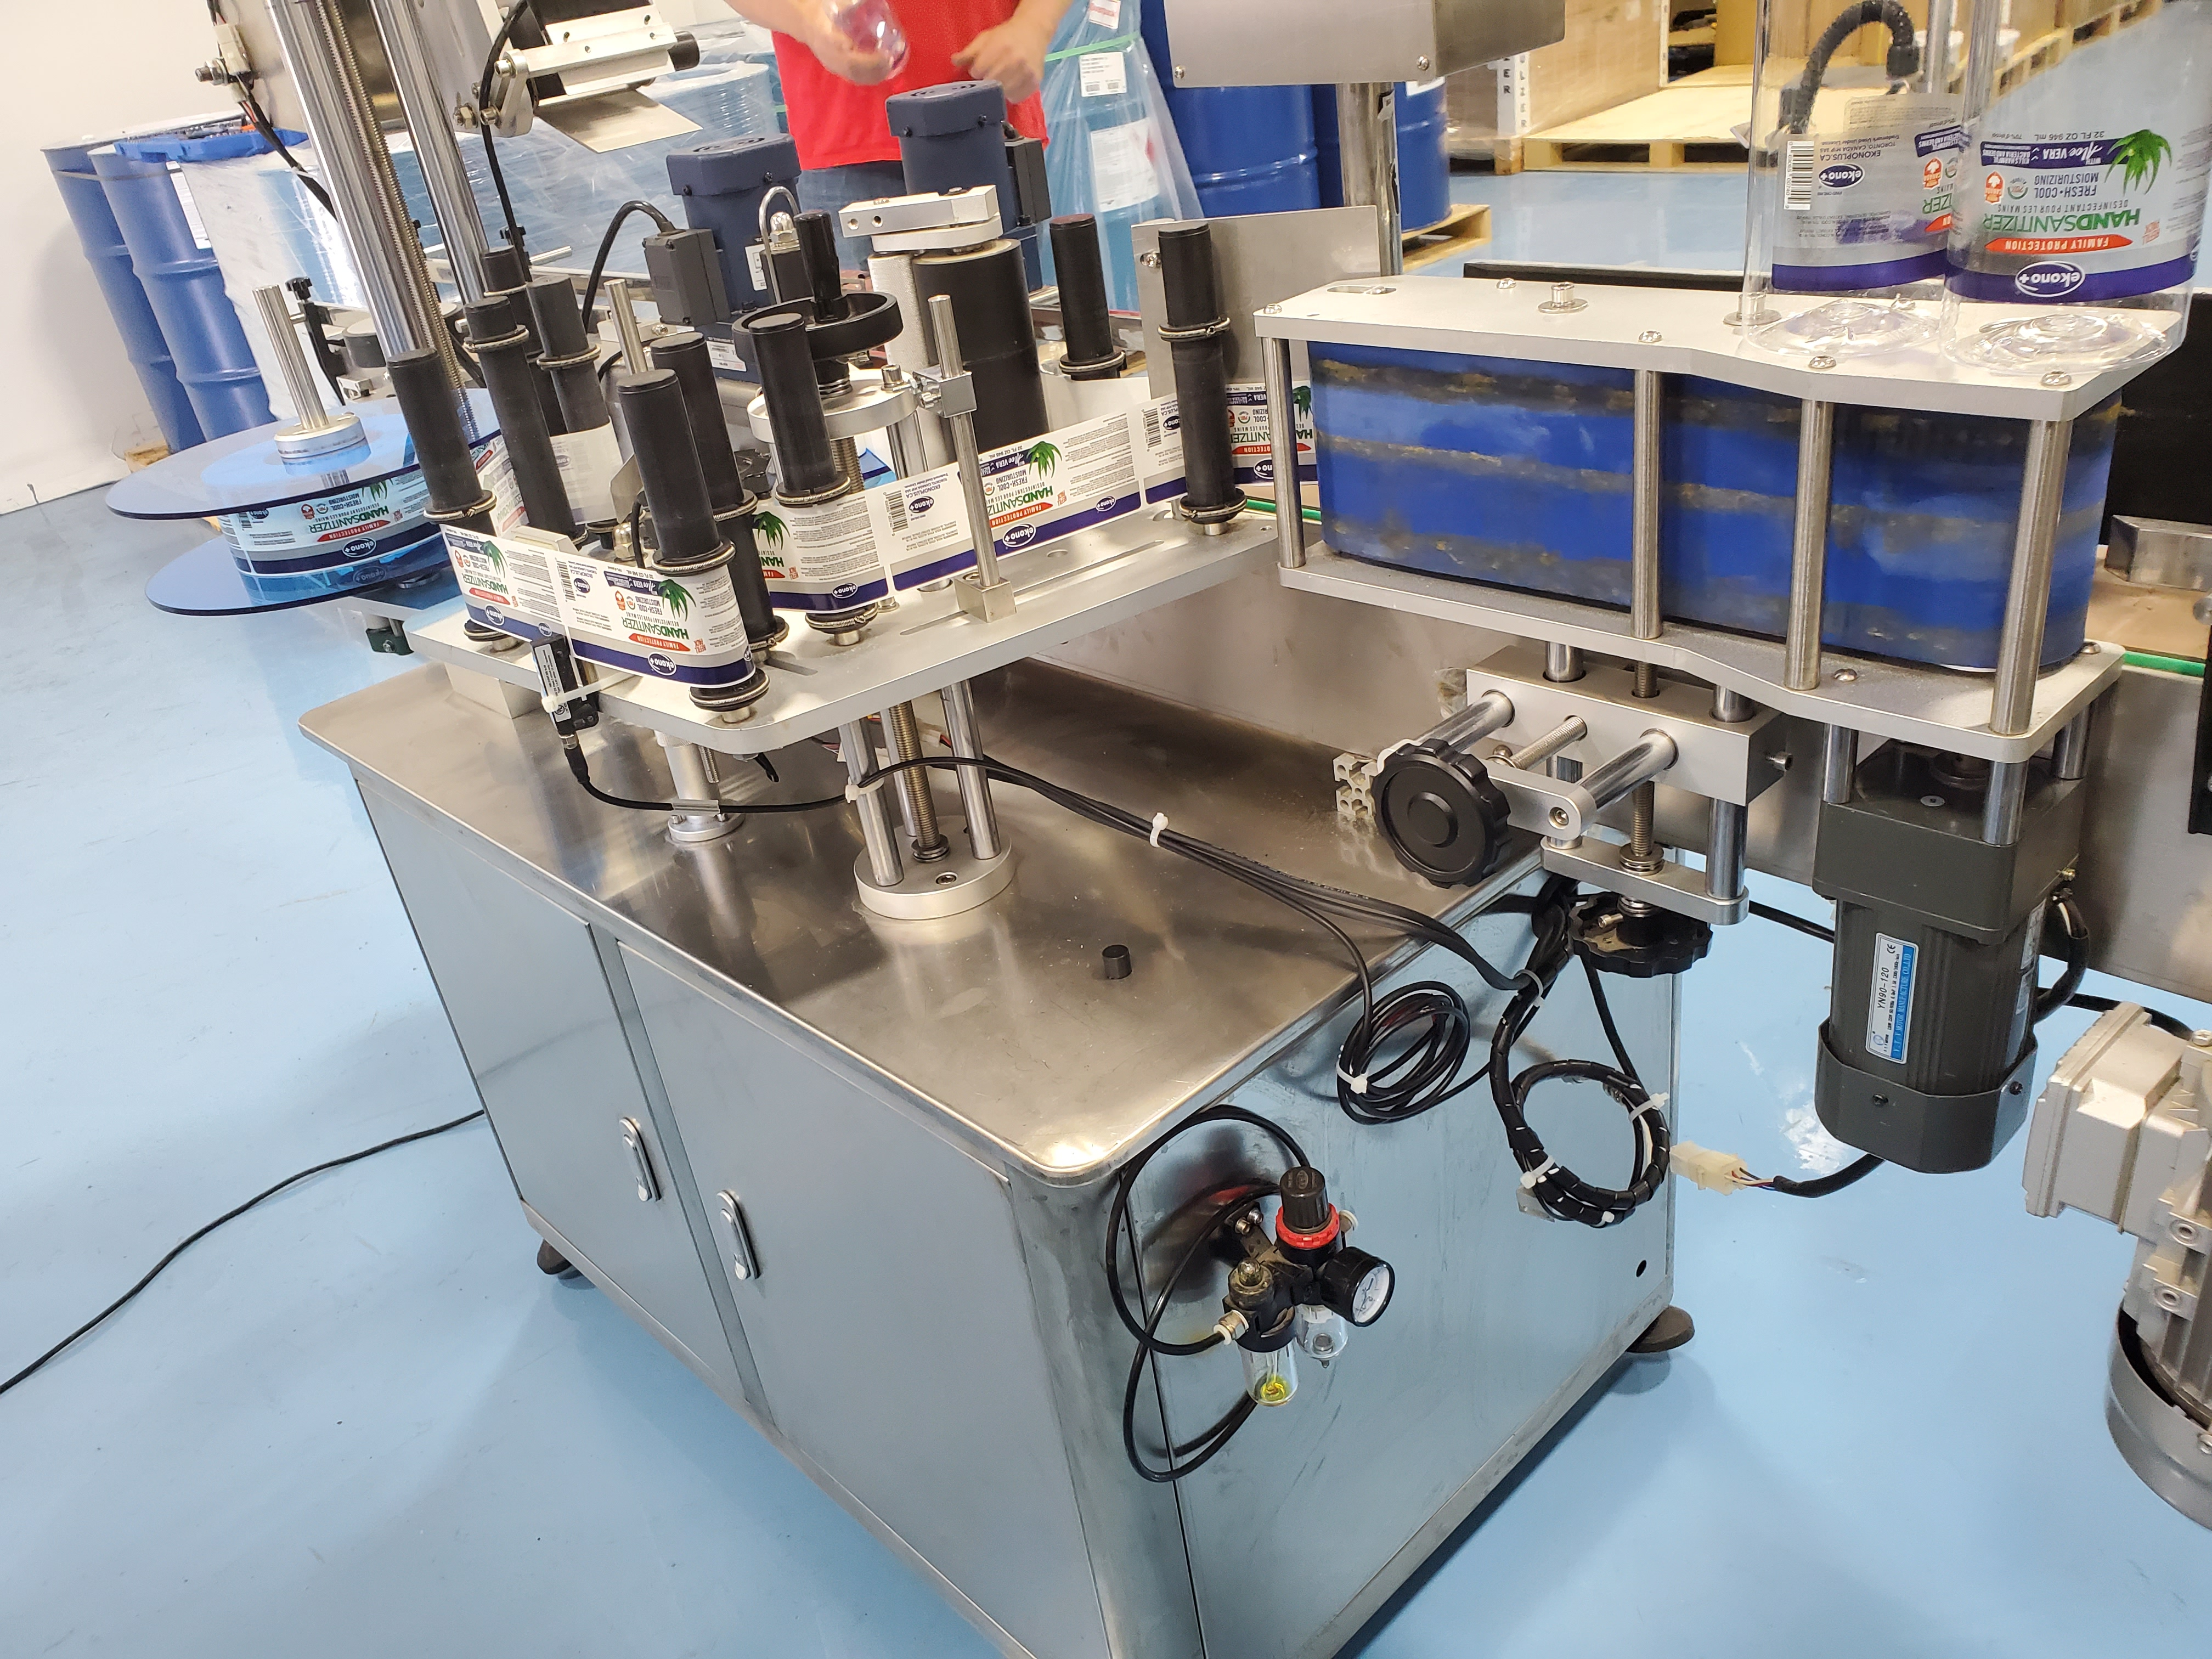 Grepack Packing Machine Integrated Wrap Around and Top Down Labeler with Conveyor - Image 3 of 8